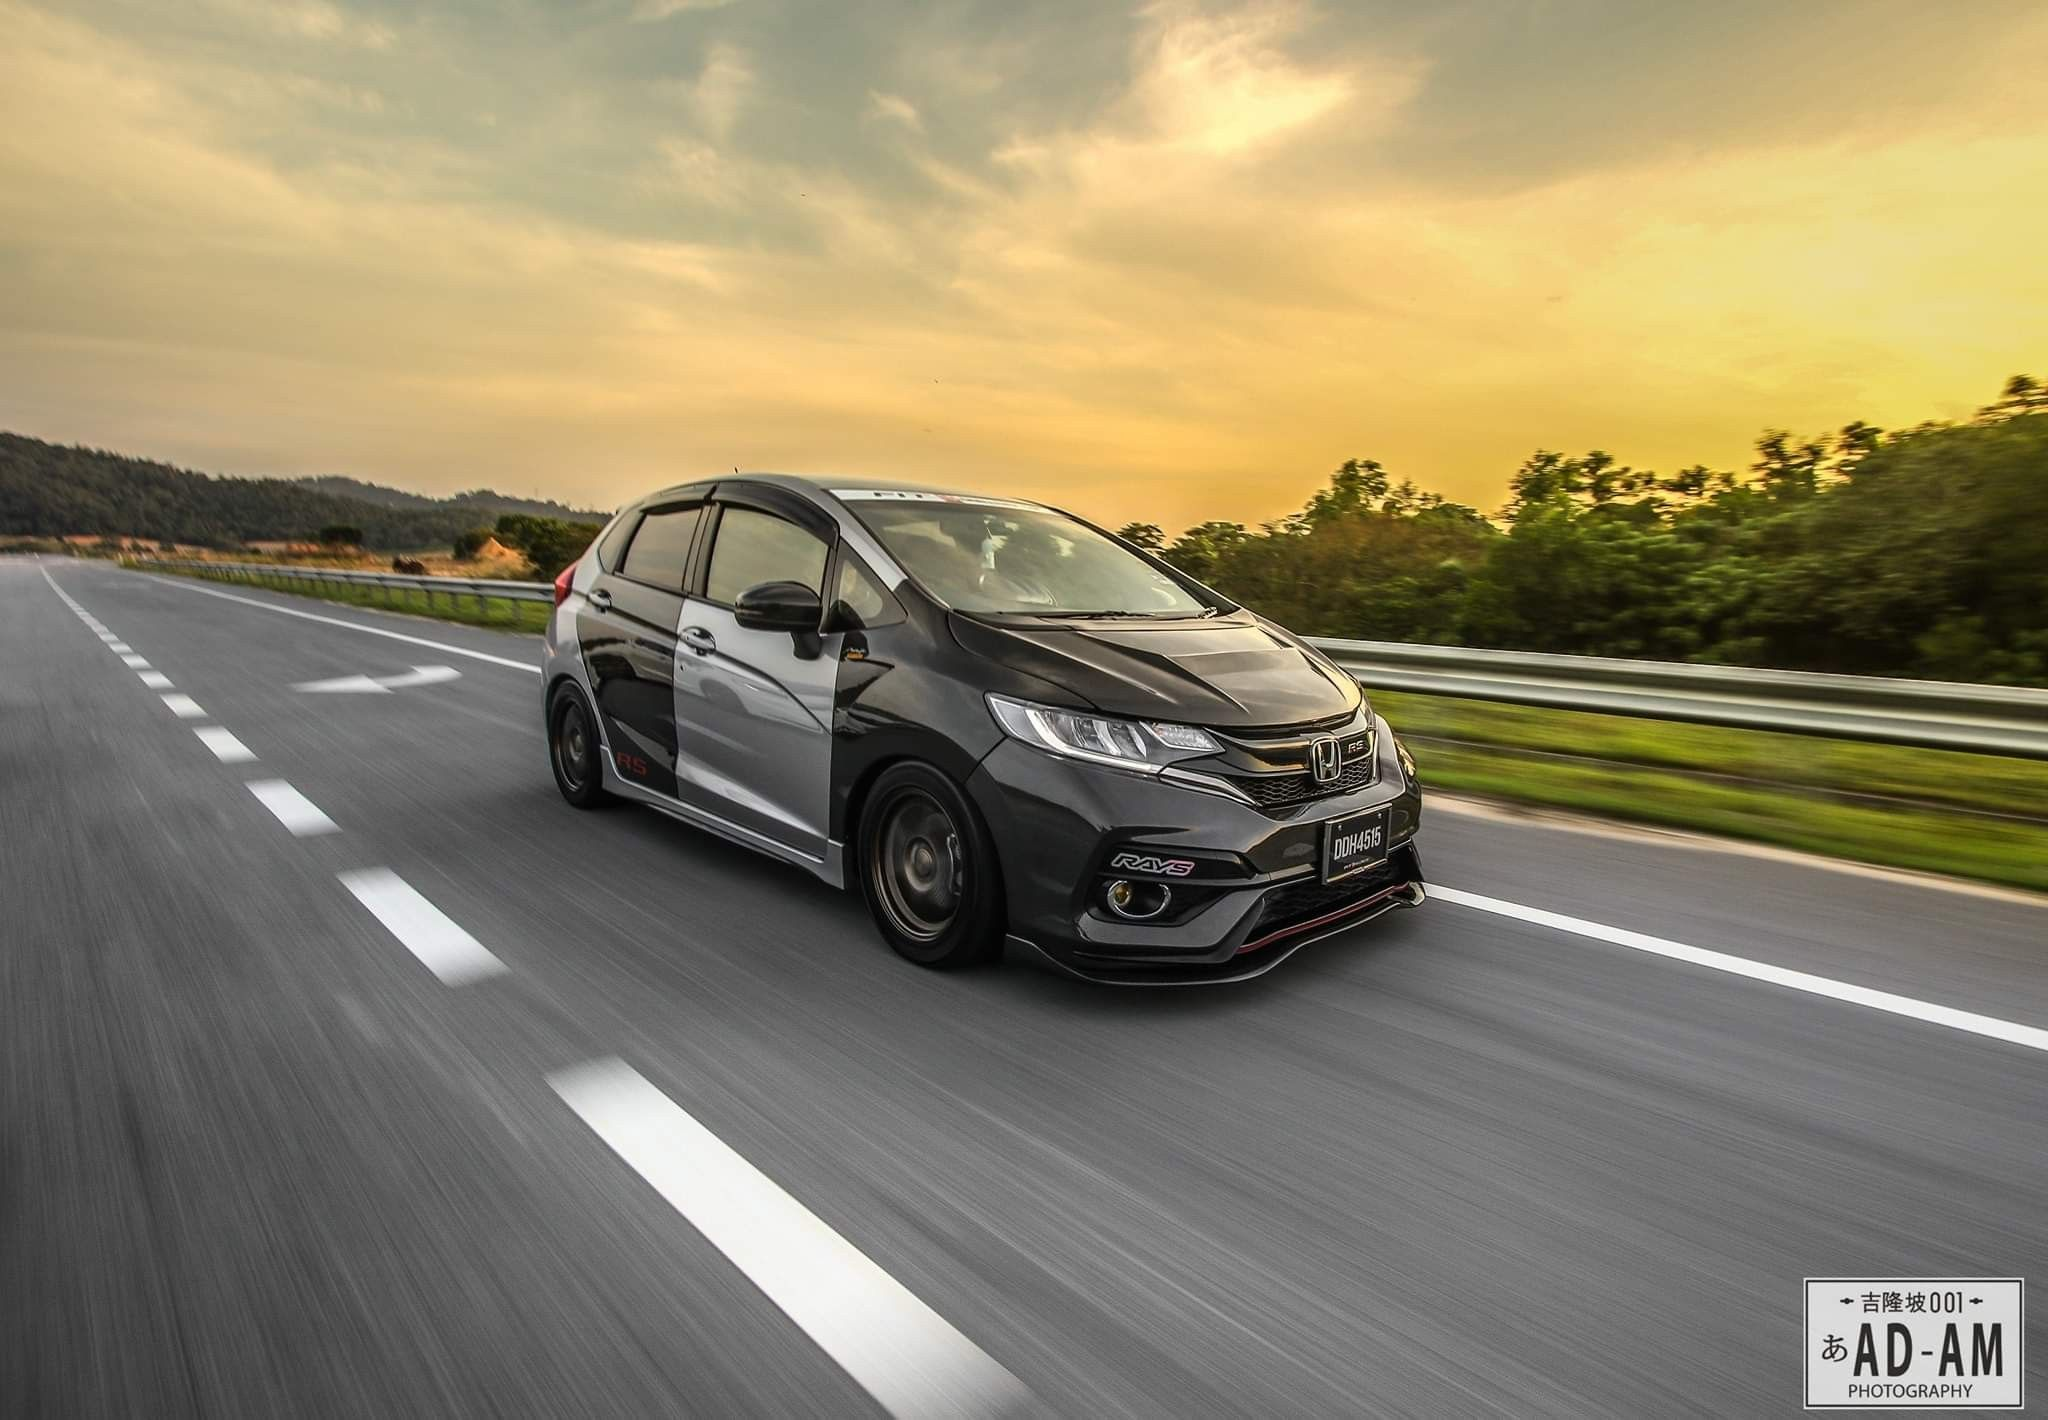 Pin by Nazz Zqn on Honda Vtec Maniac in 2020 Honda fit